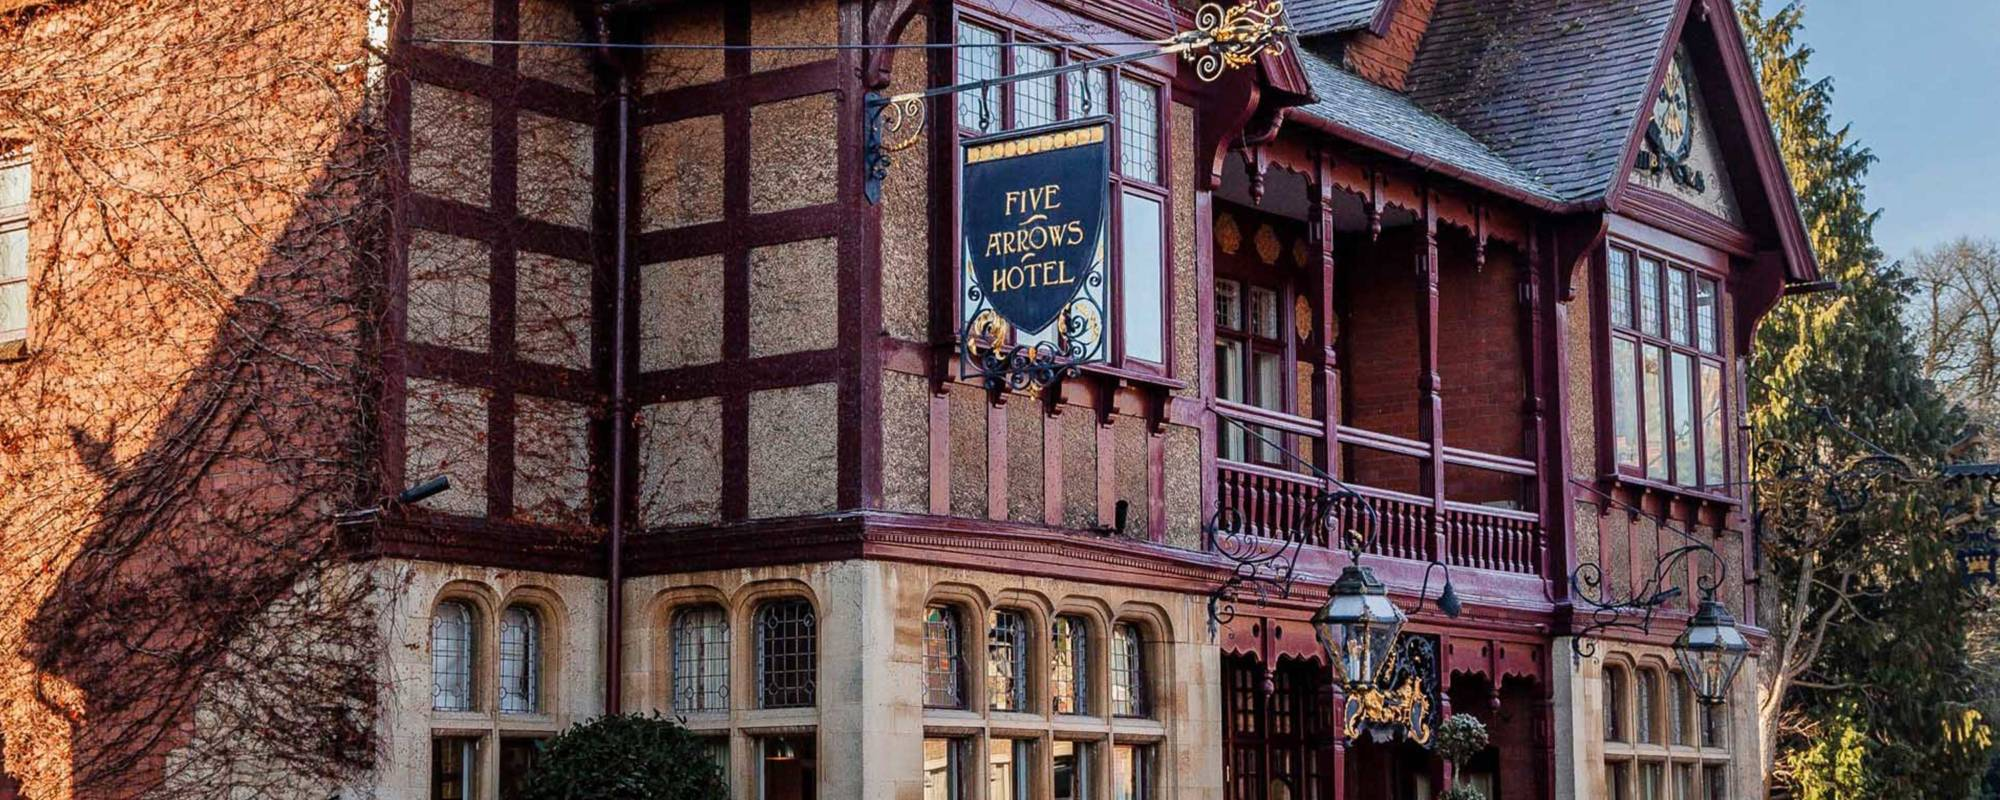 Five Arrows Hotel on a winter's day